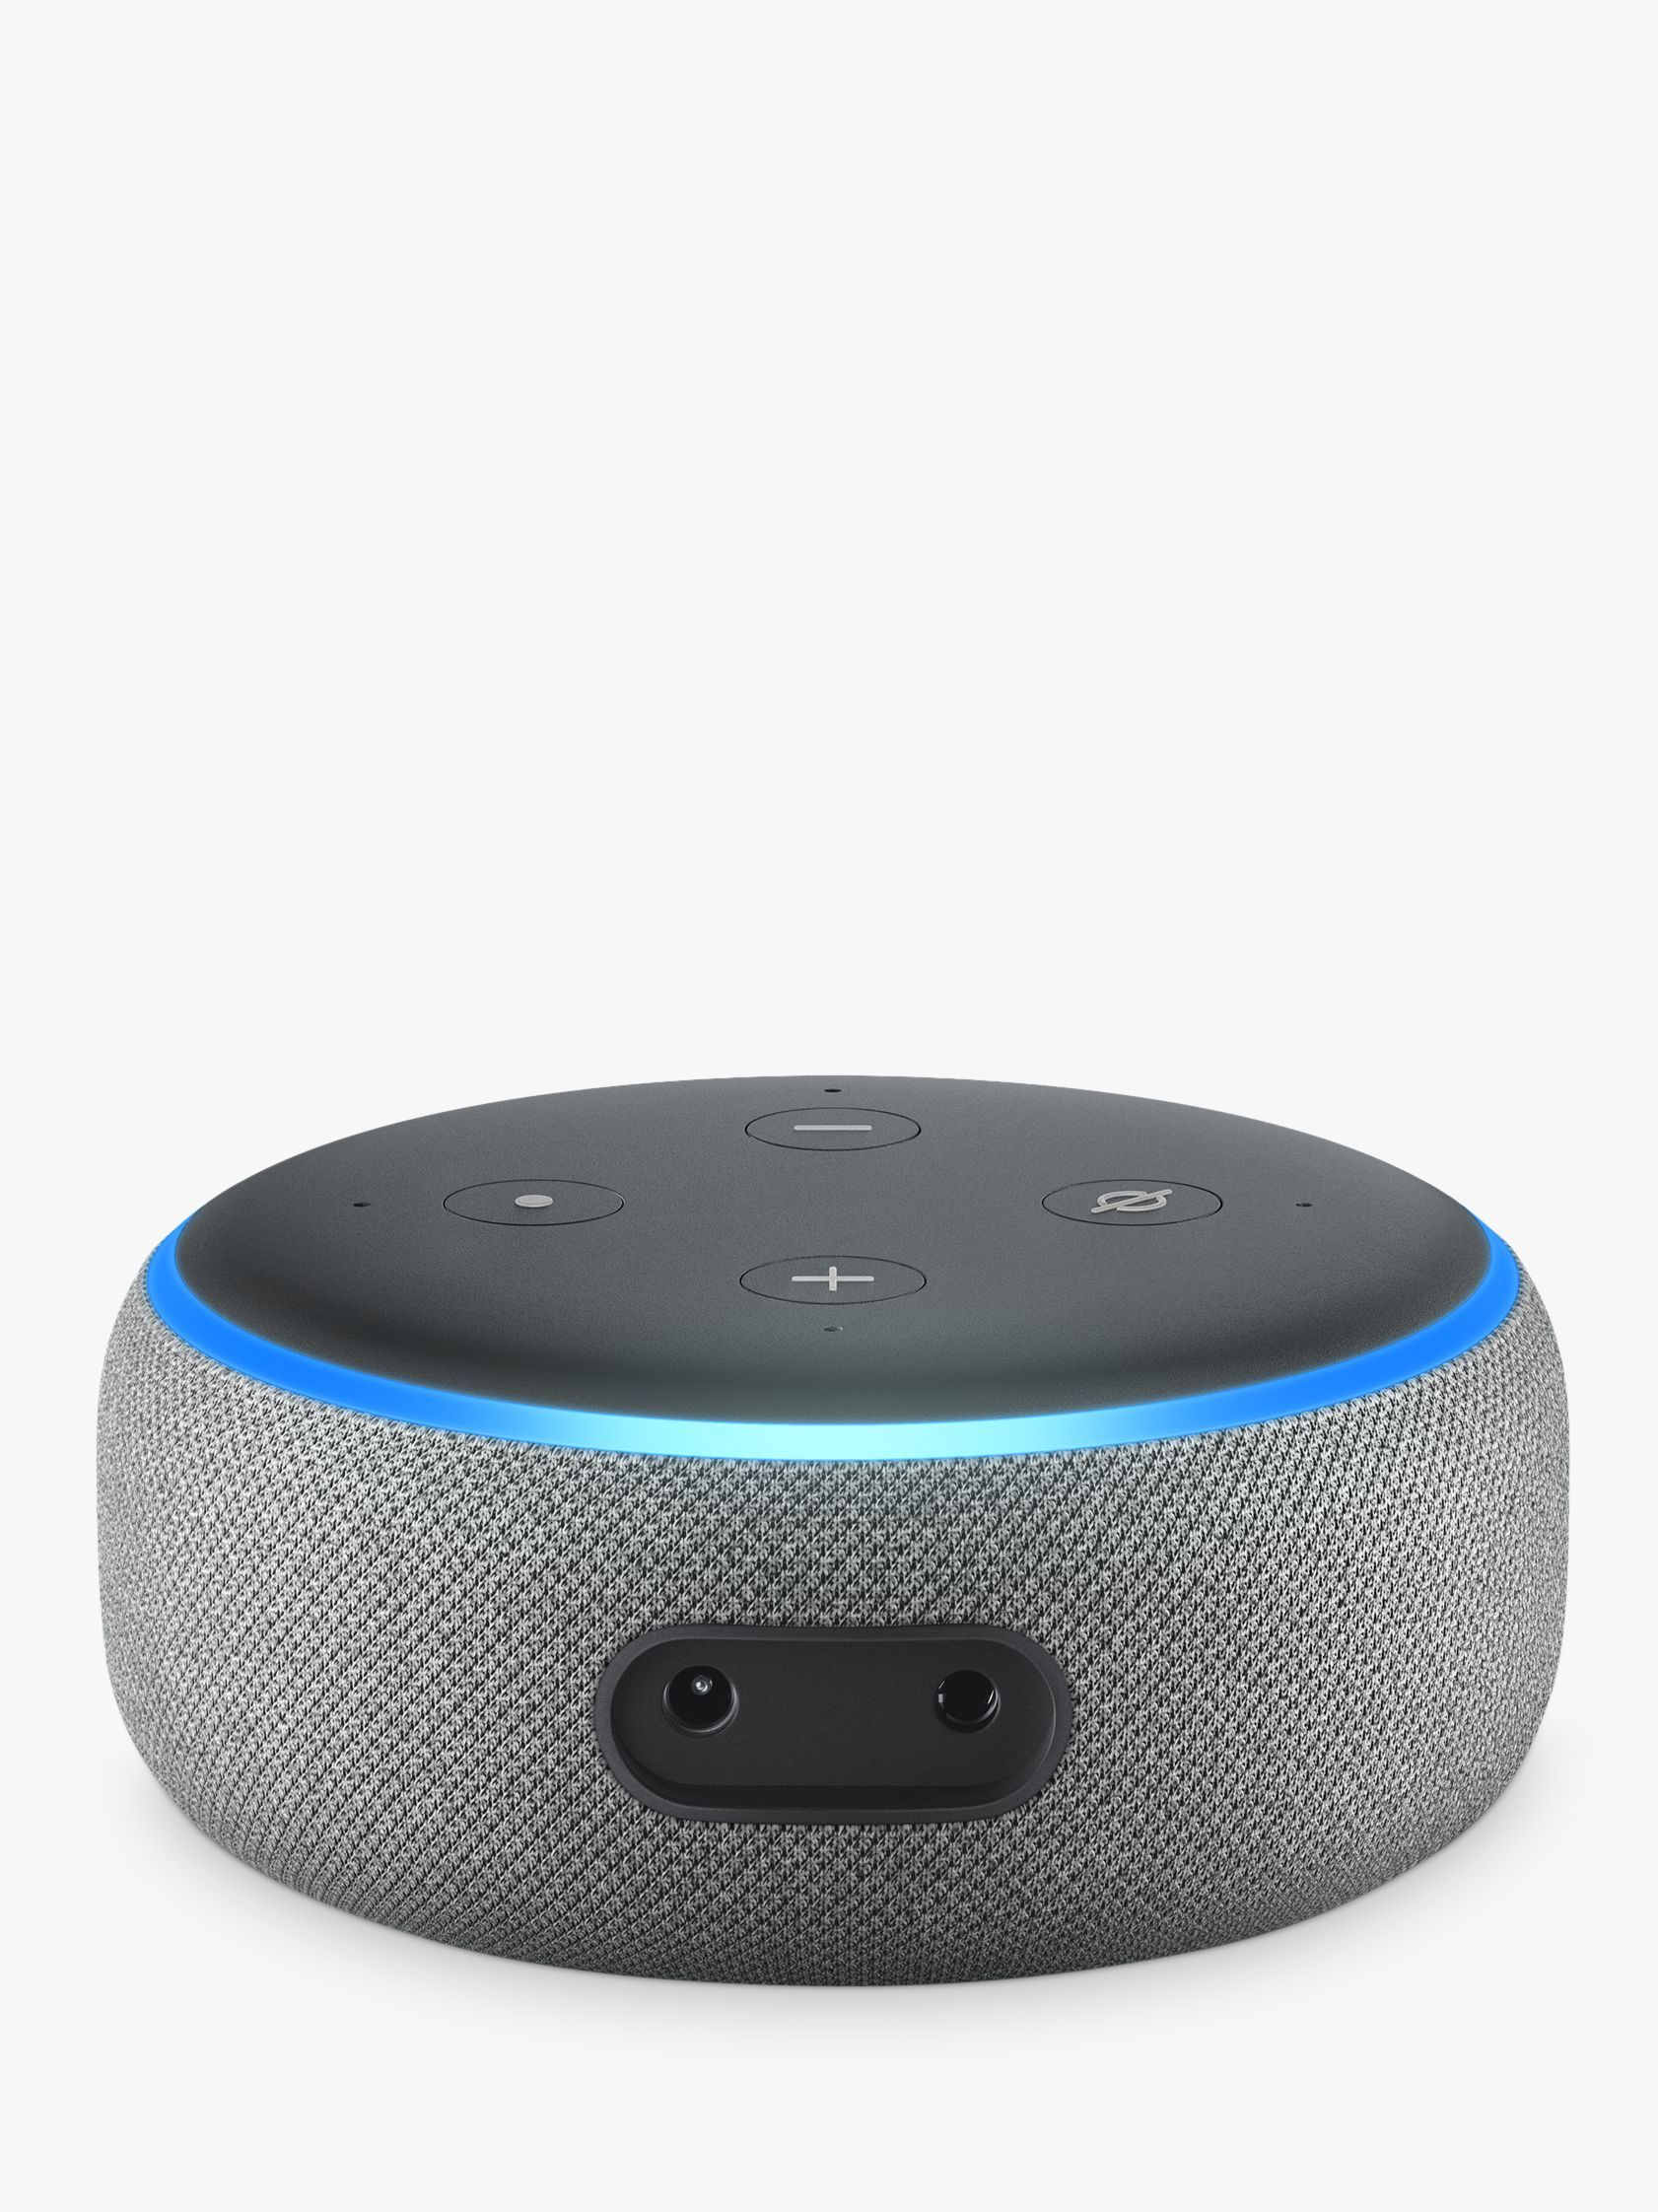 Amazon Echo Dot Smart Device with Alexa Voice Recognition